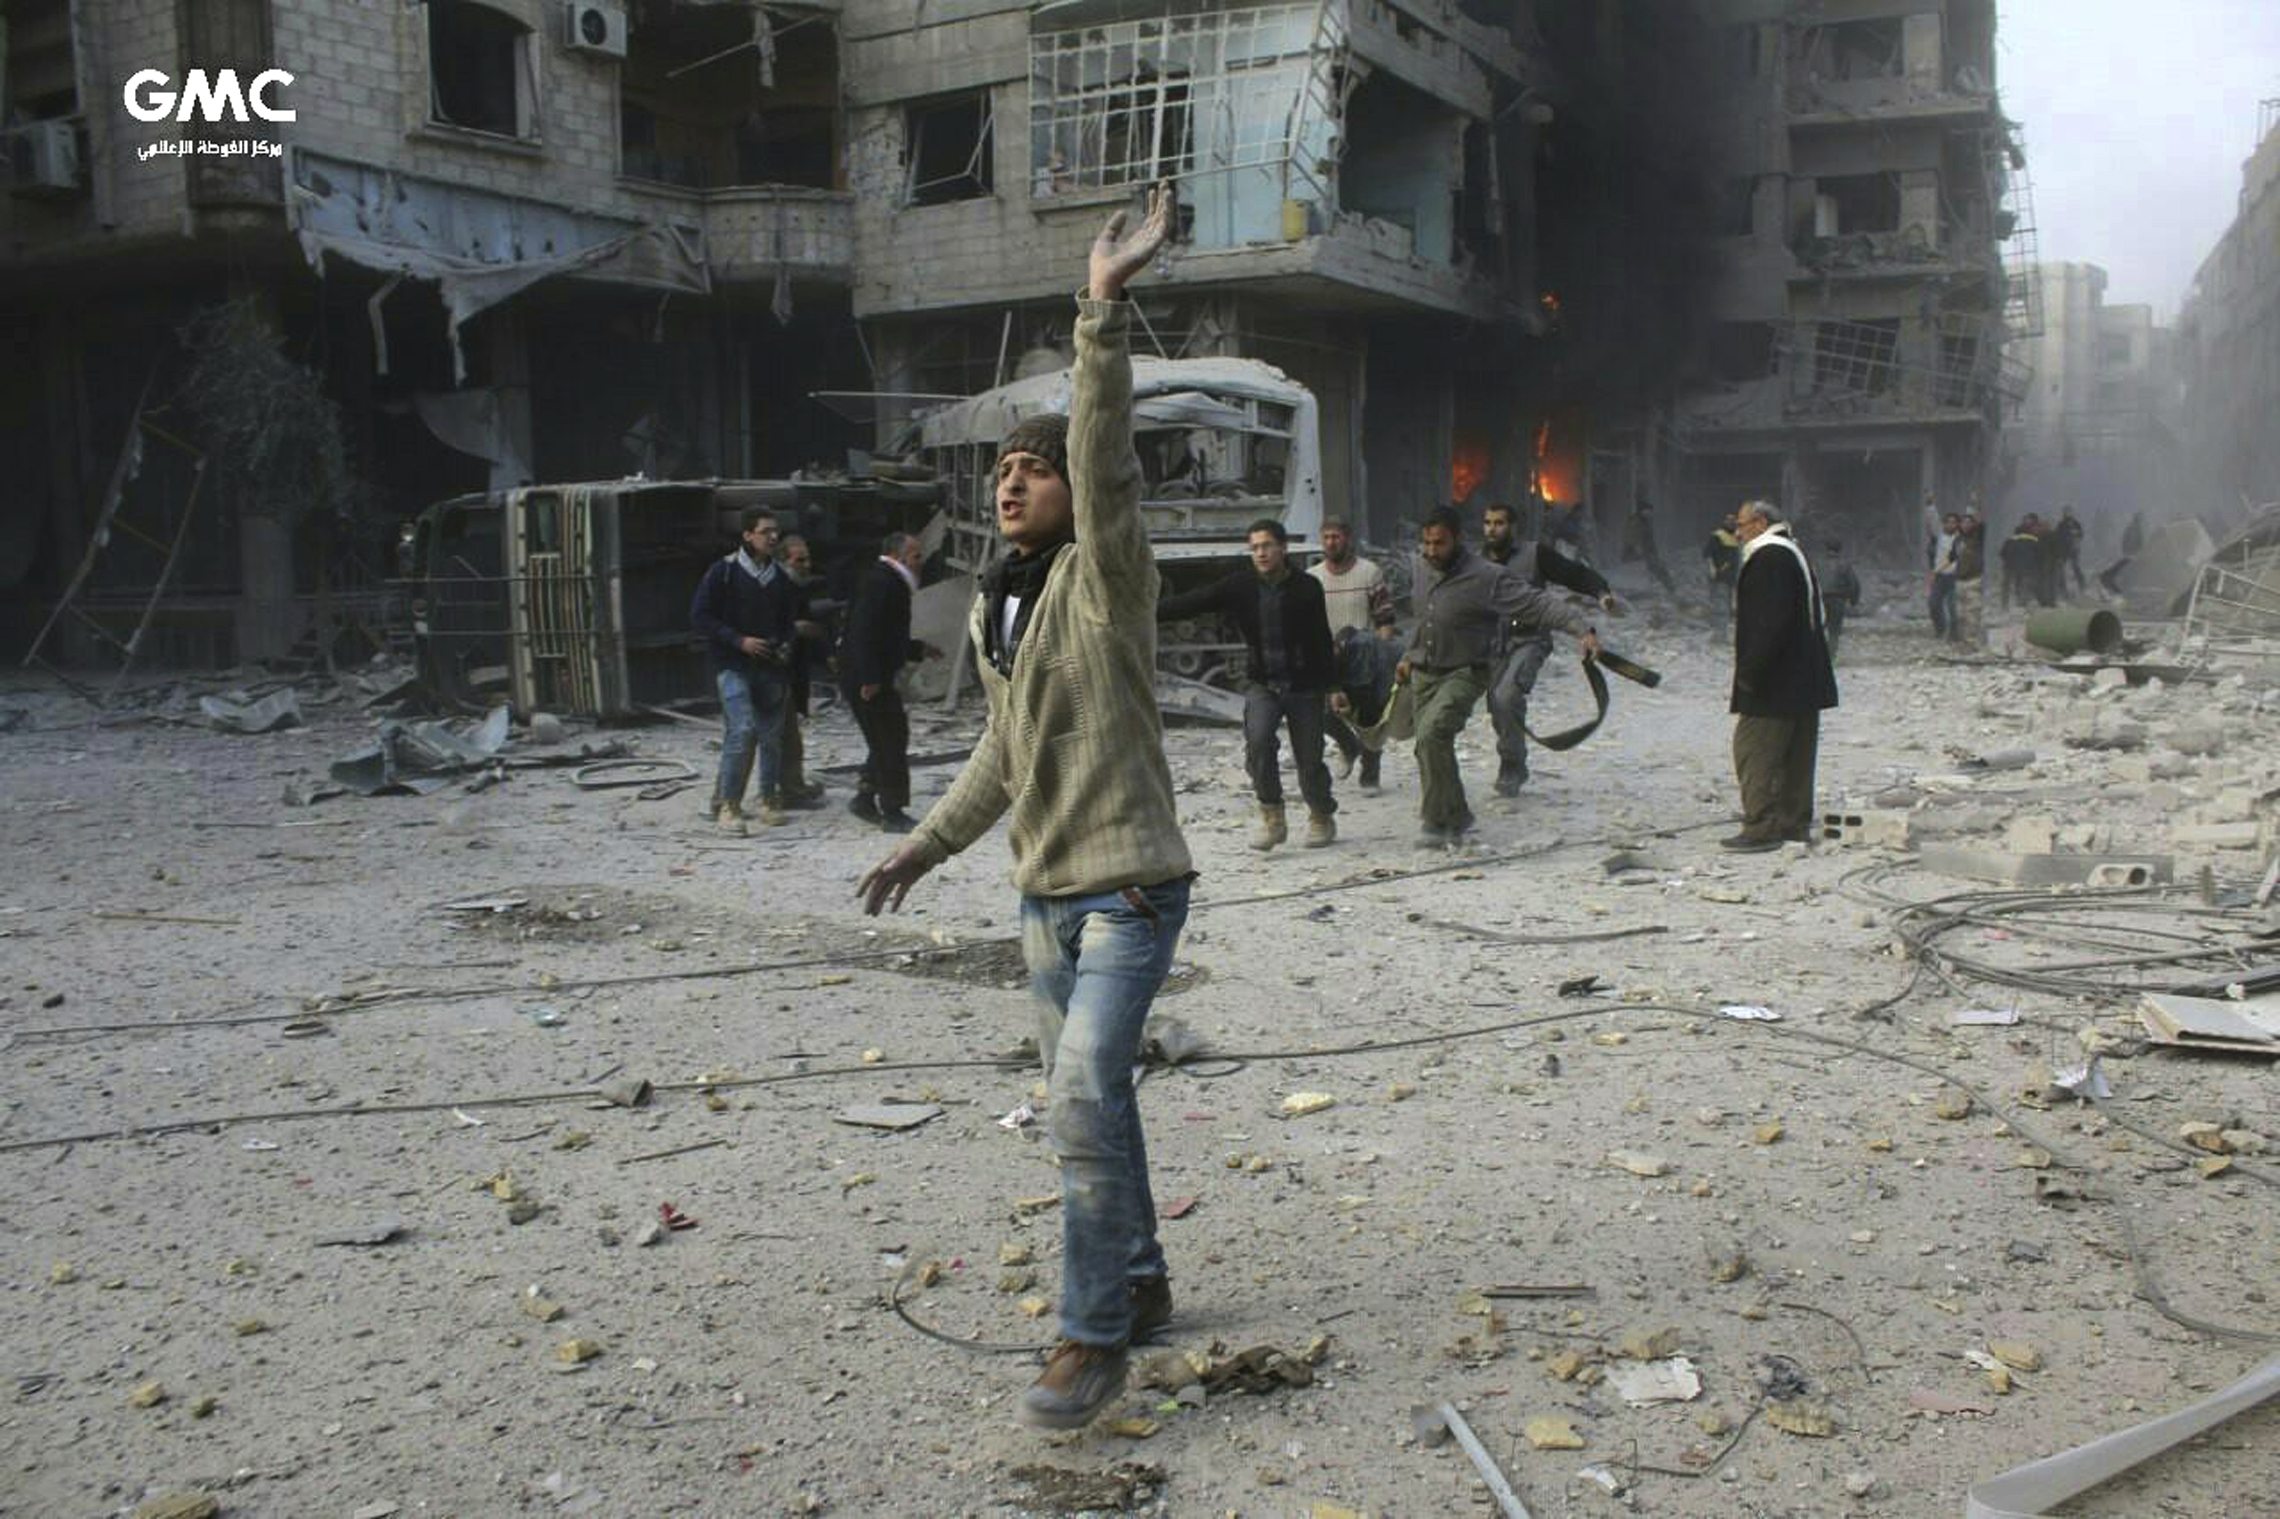 (Ghouta Media Center via AP)